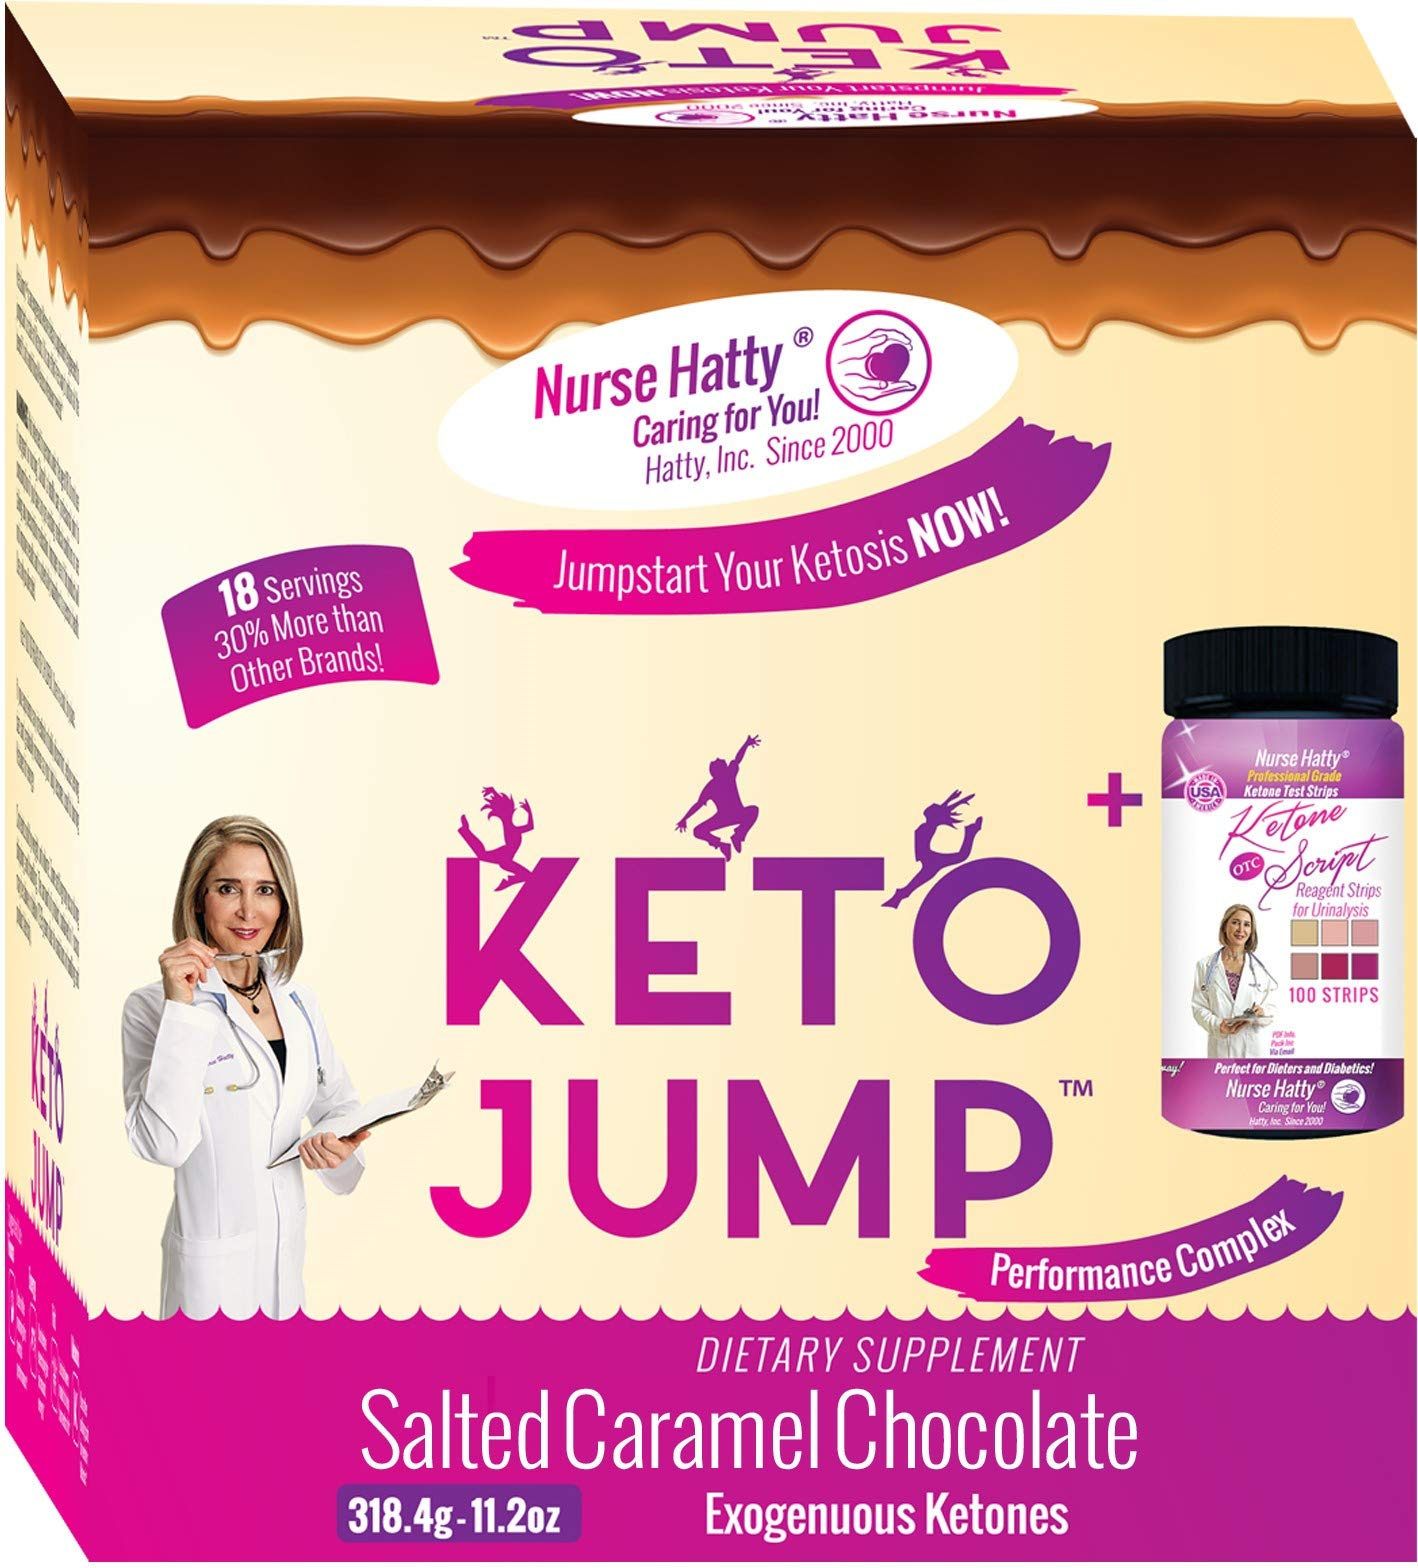 Nurse Hatty ® KetoJump BHB SALTS + KETONE STRIPS - Exogenous Ketones - Beta-Hydroxybutyrates - USA-made & PATENTED for the Ketogenic Diet (Calcium, Sodium, Magnesium & Potassium) 18 serv. Choc Caramel by Nurse Hatty